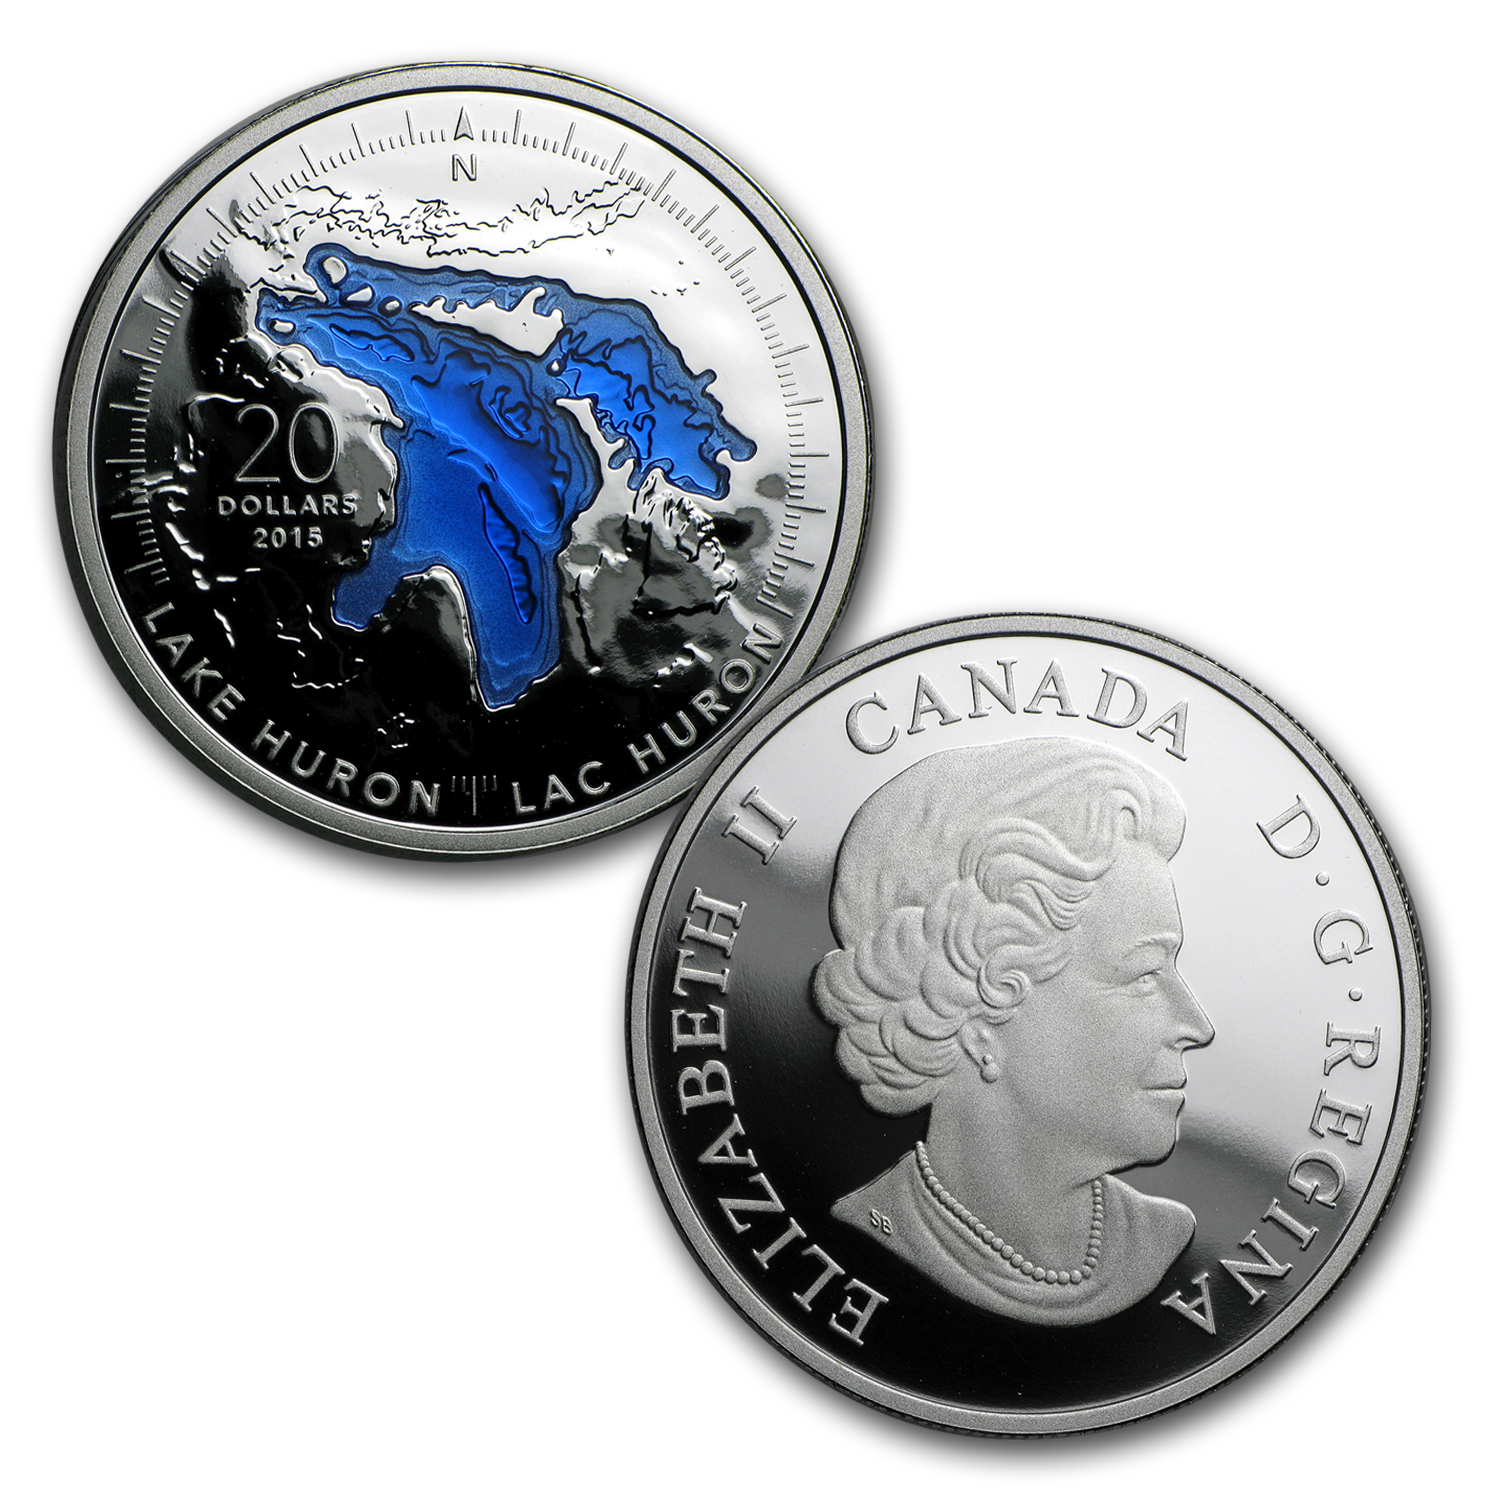 Canada 5-Coin 1 oz Silver $20 The Great Lakes Proof Set